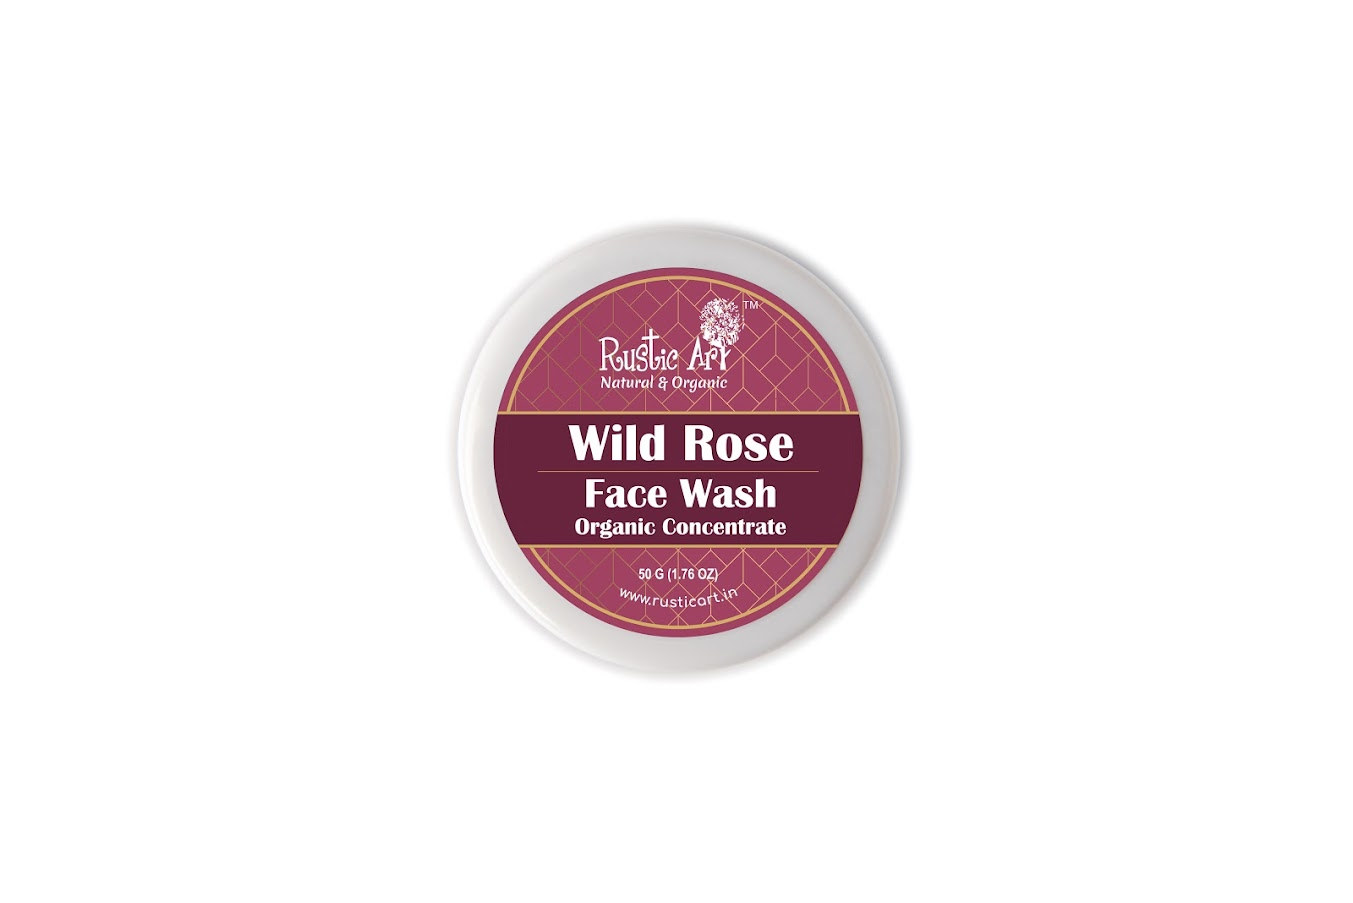 Rustic Art Organic Wild Rose Face Wash Concentrate